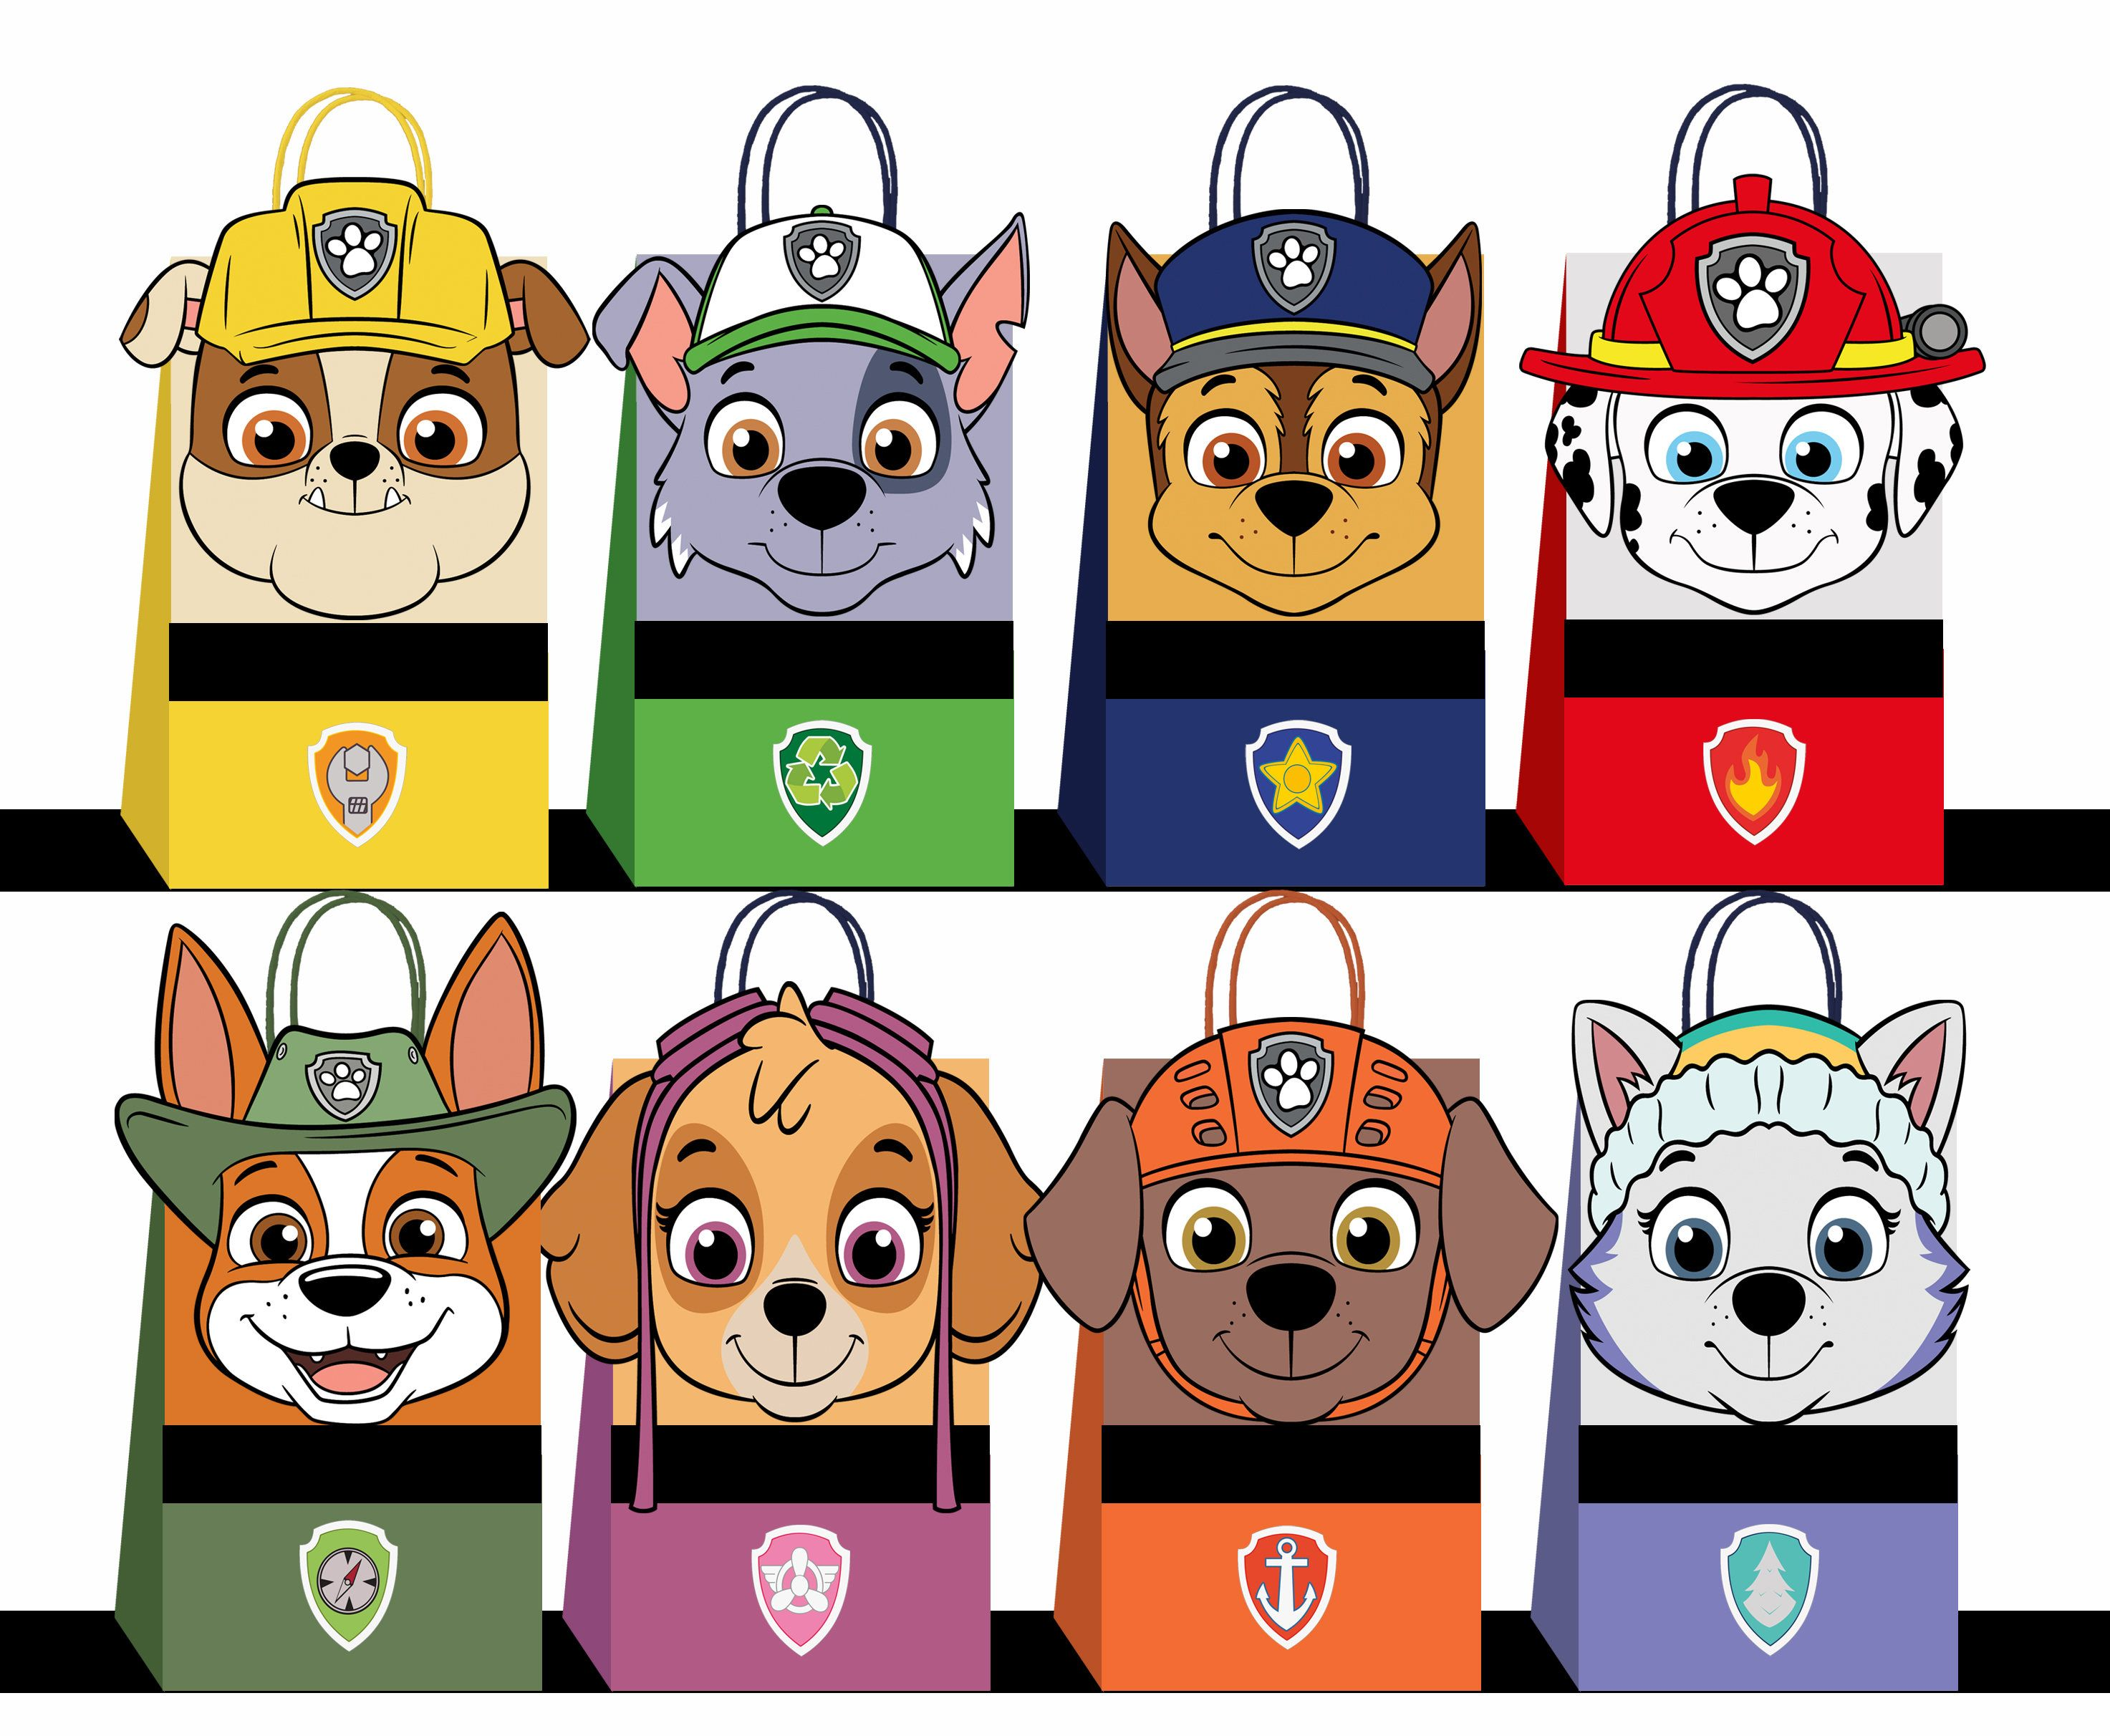 Paw Patrol Favor Bags Paw Patrol Party Bags Printable Paw Patrol Diy Gift Bag Paw Patrol Birthday Printable Digital Files Paw Patrol Favors Paw Patrol Birthday Paw Patrol Gifts